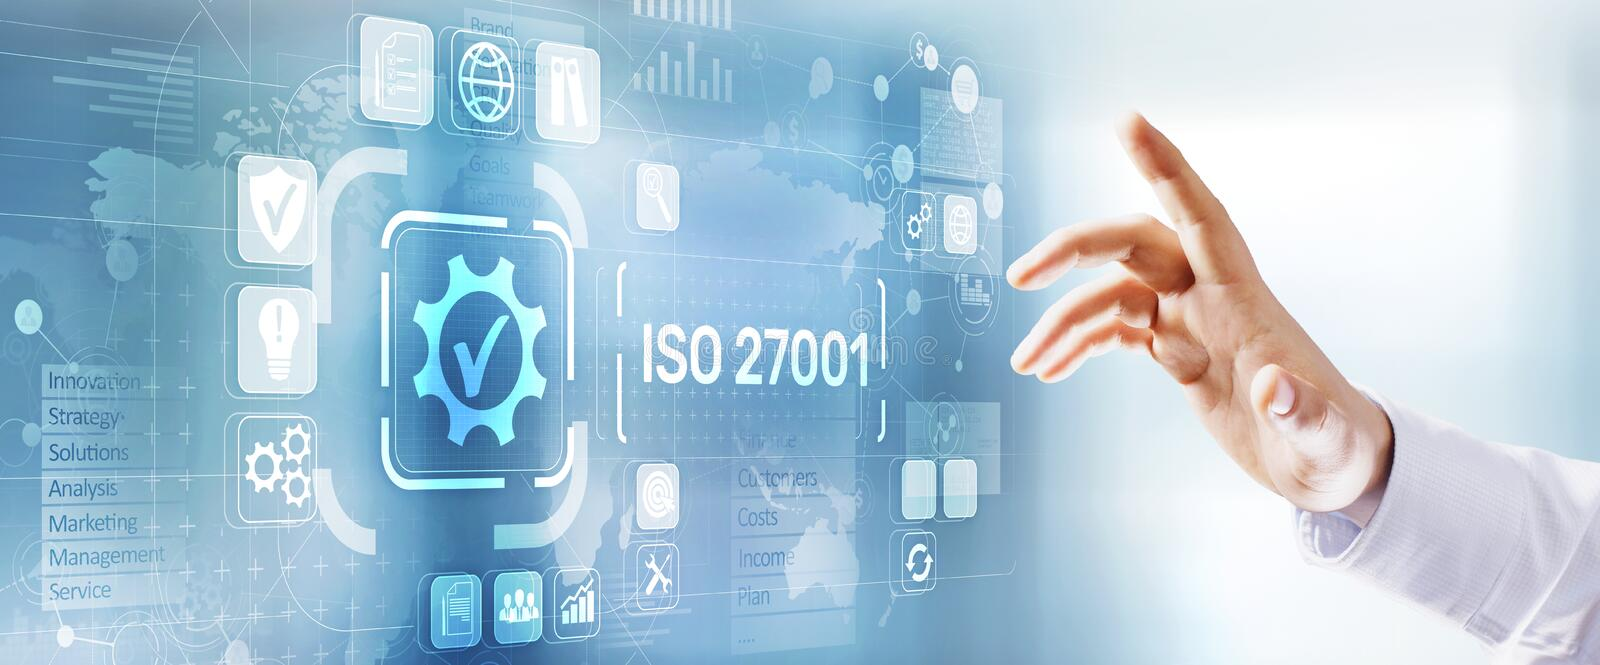 Iso 27001 Standard Quality Certification Assurance Standardisation. Business technology concept. royalty free stock image